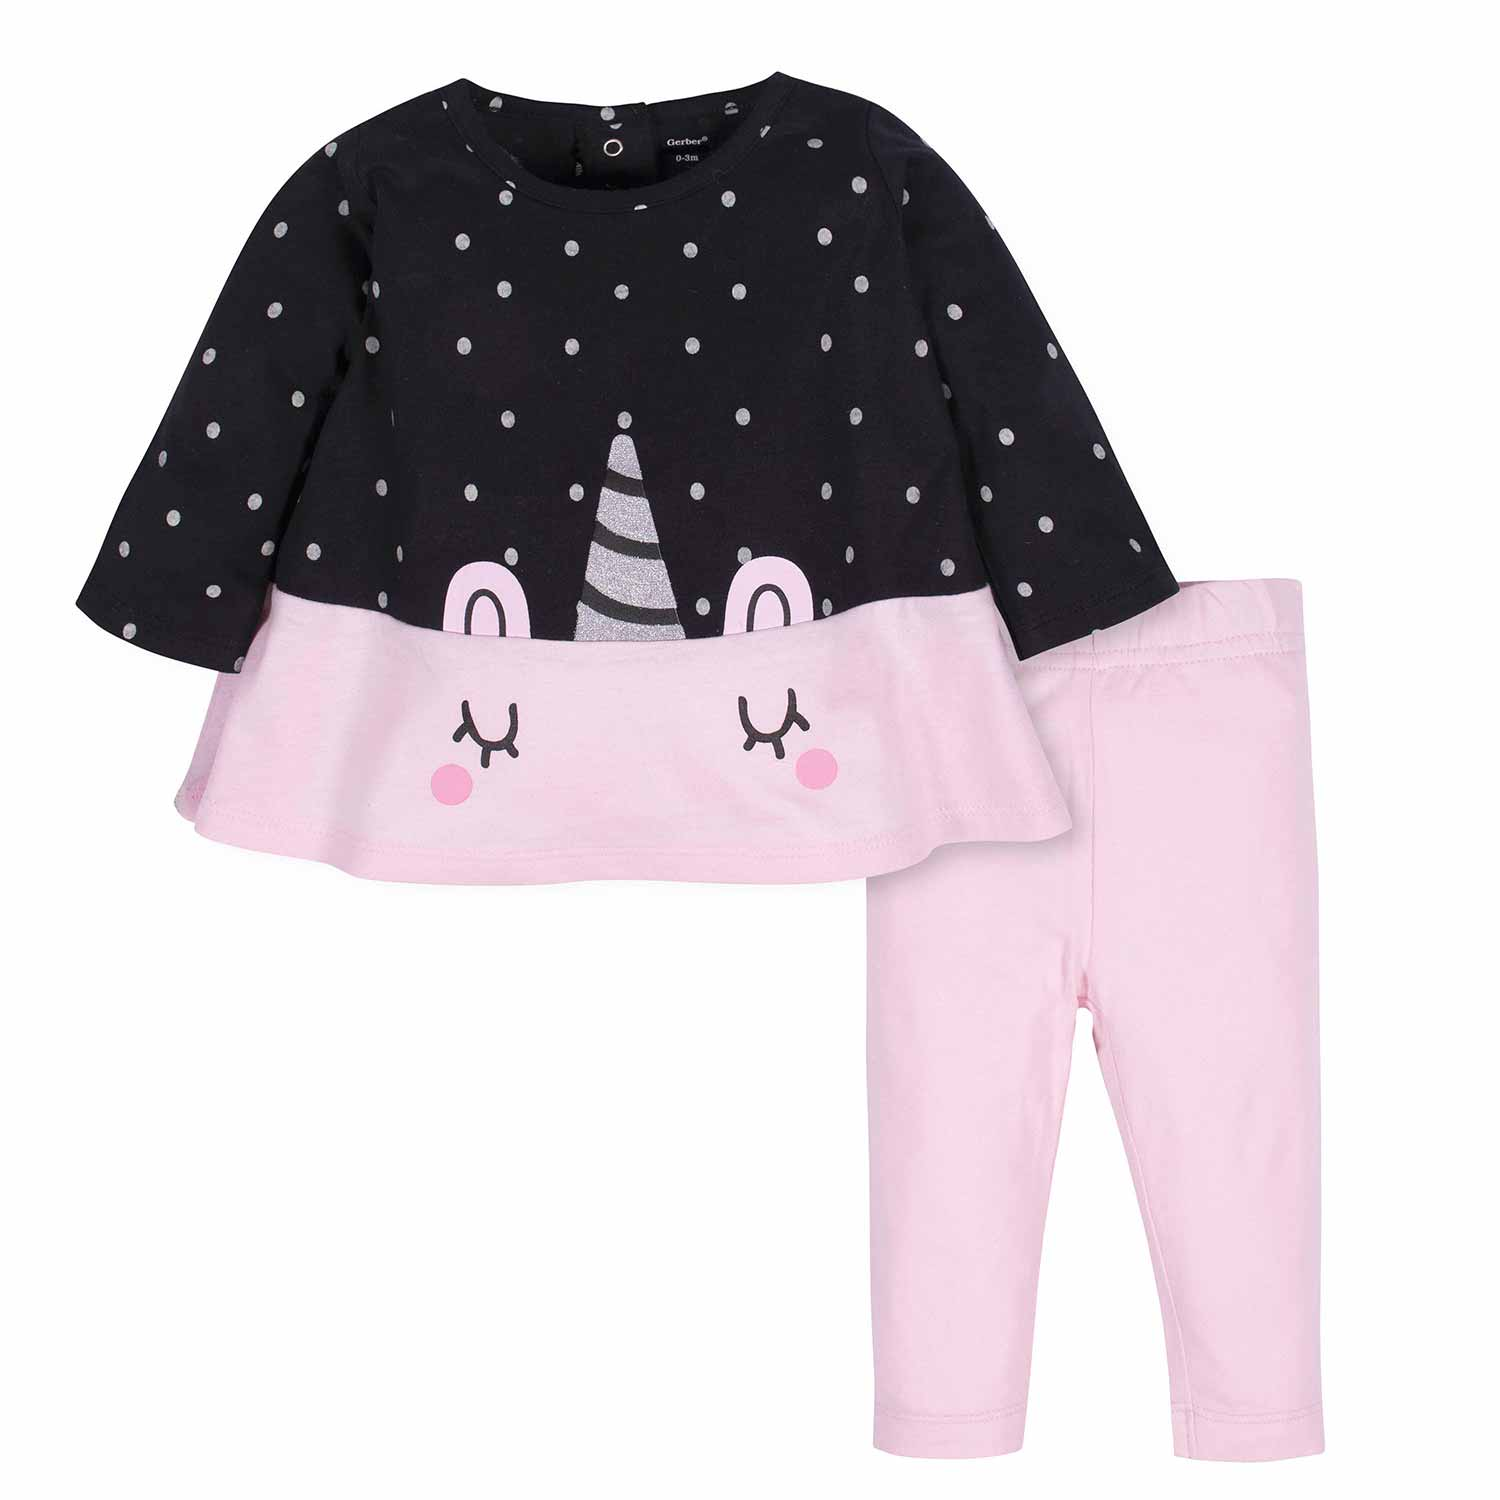 2-Piece Baby Girls Unicorn Tunic and Legging Set